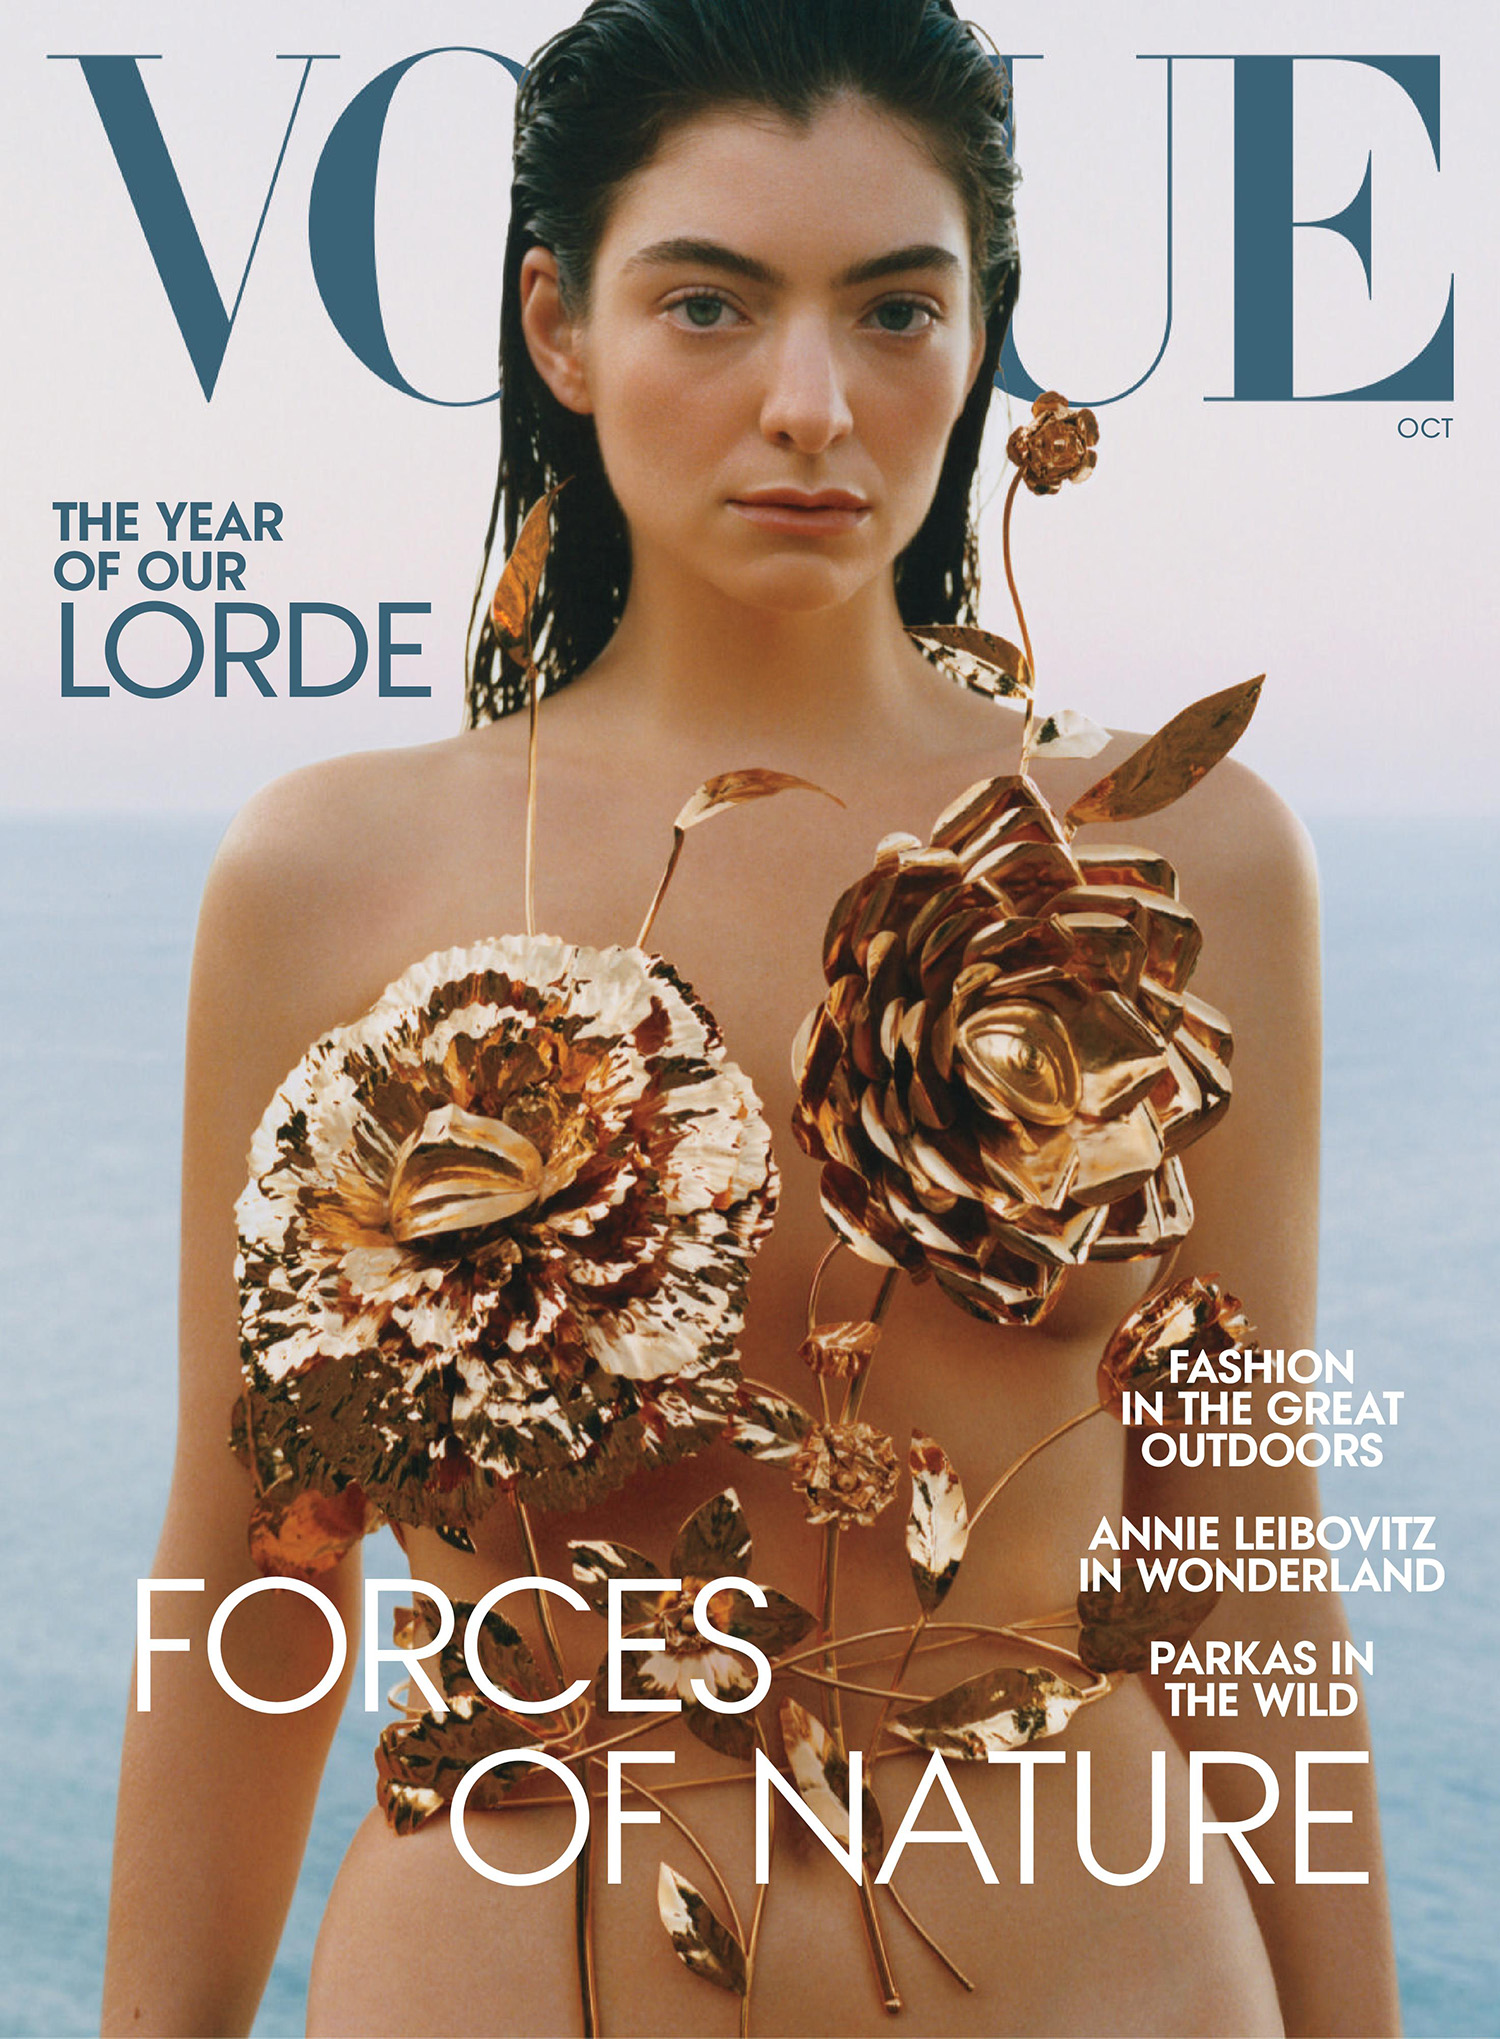 Lorde covers Vogue US October 2021 by Théo de Gueltzl